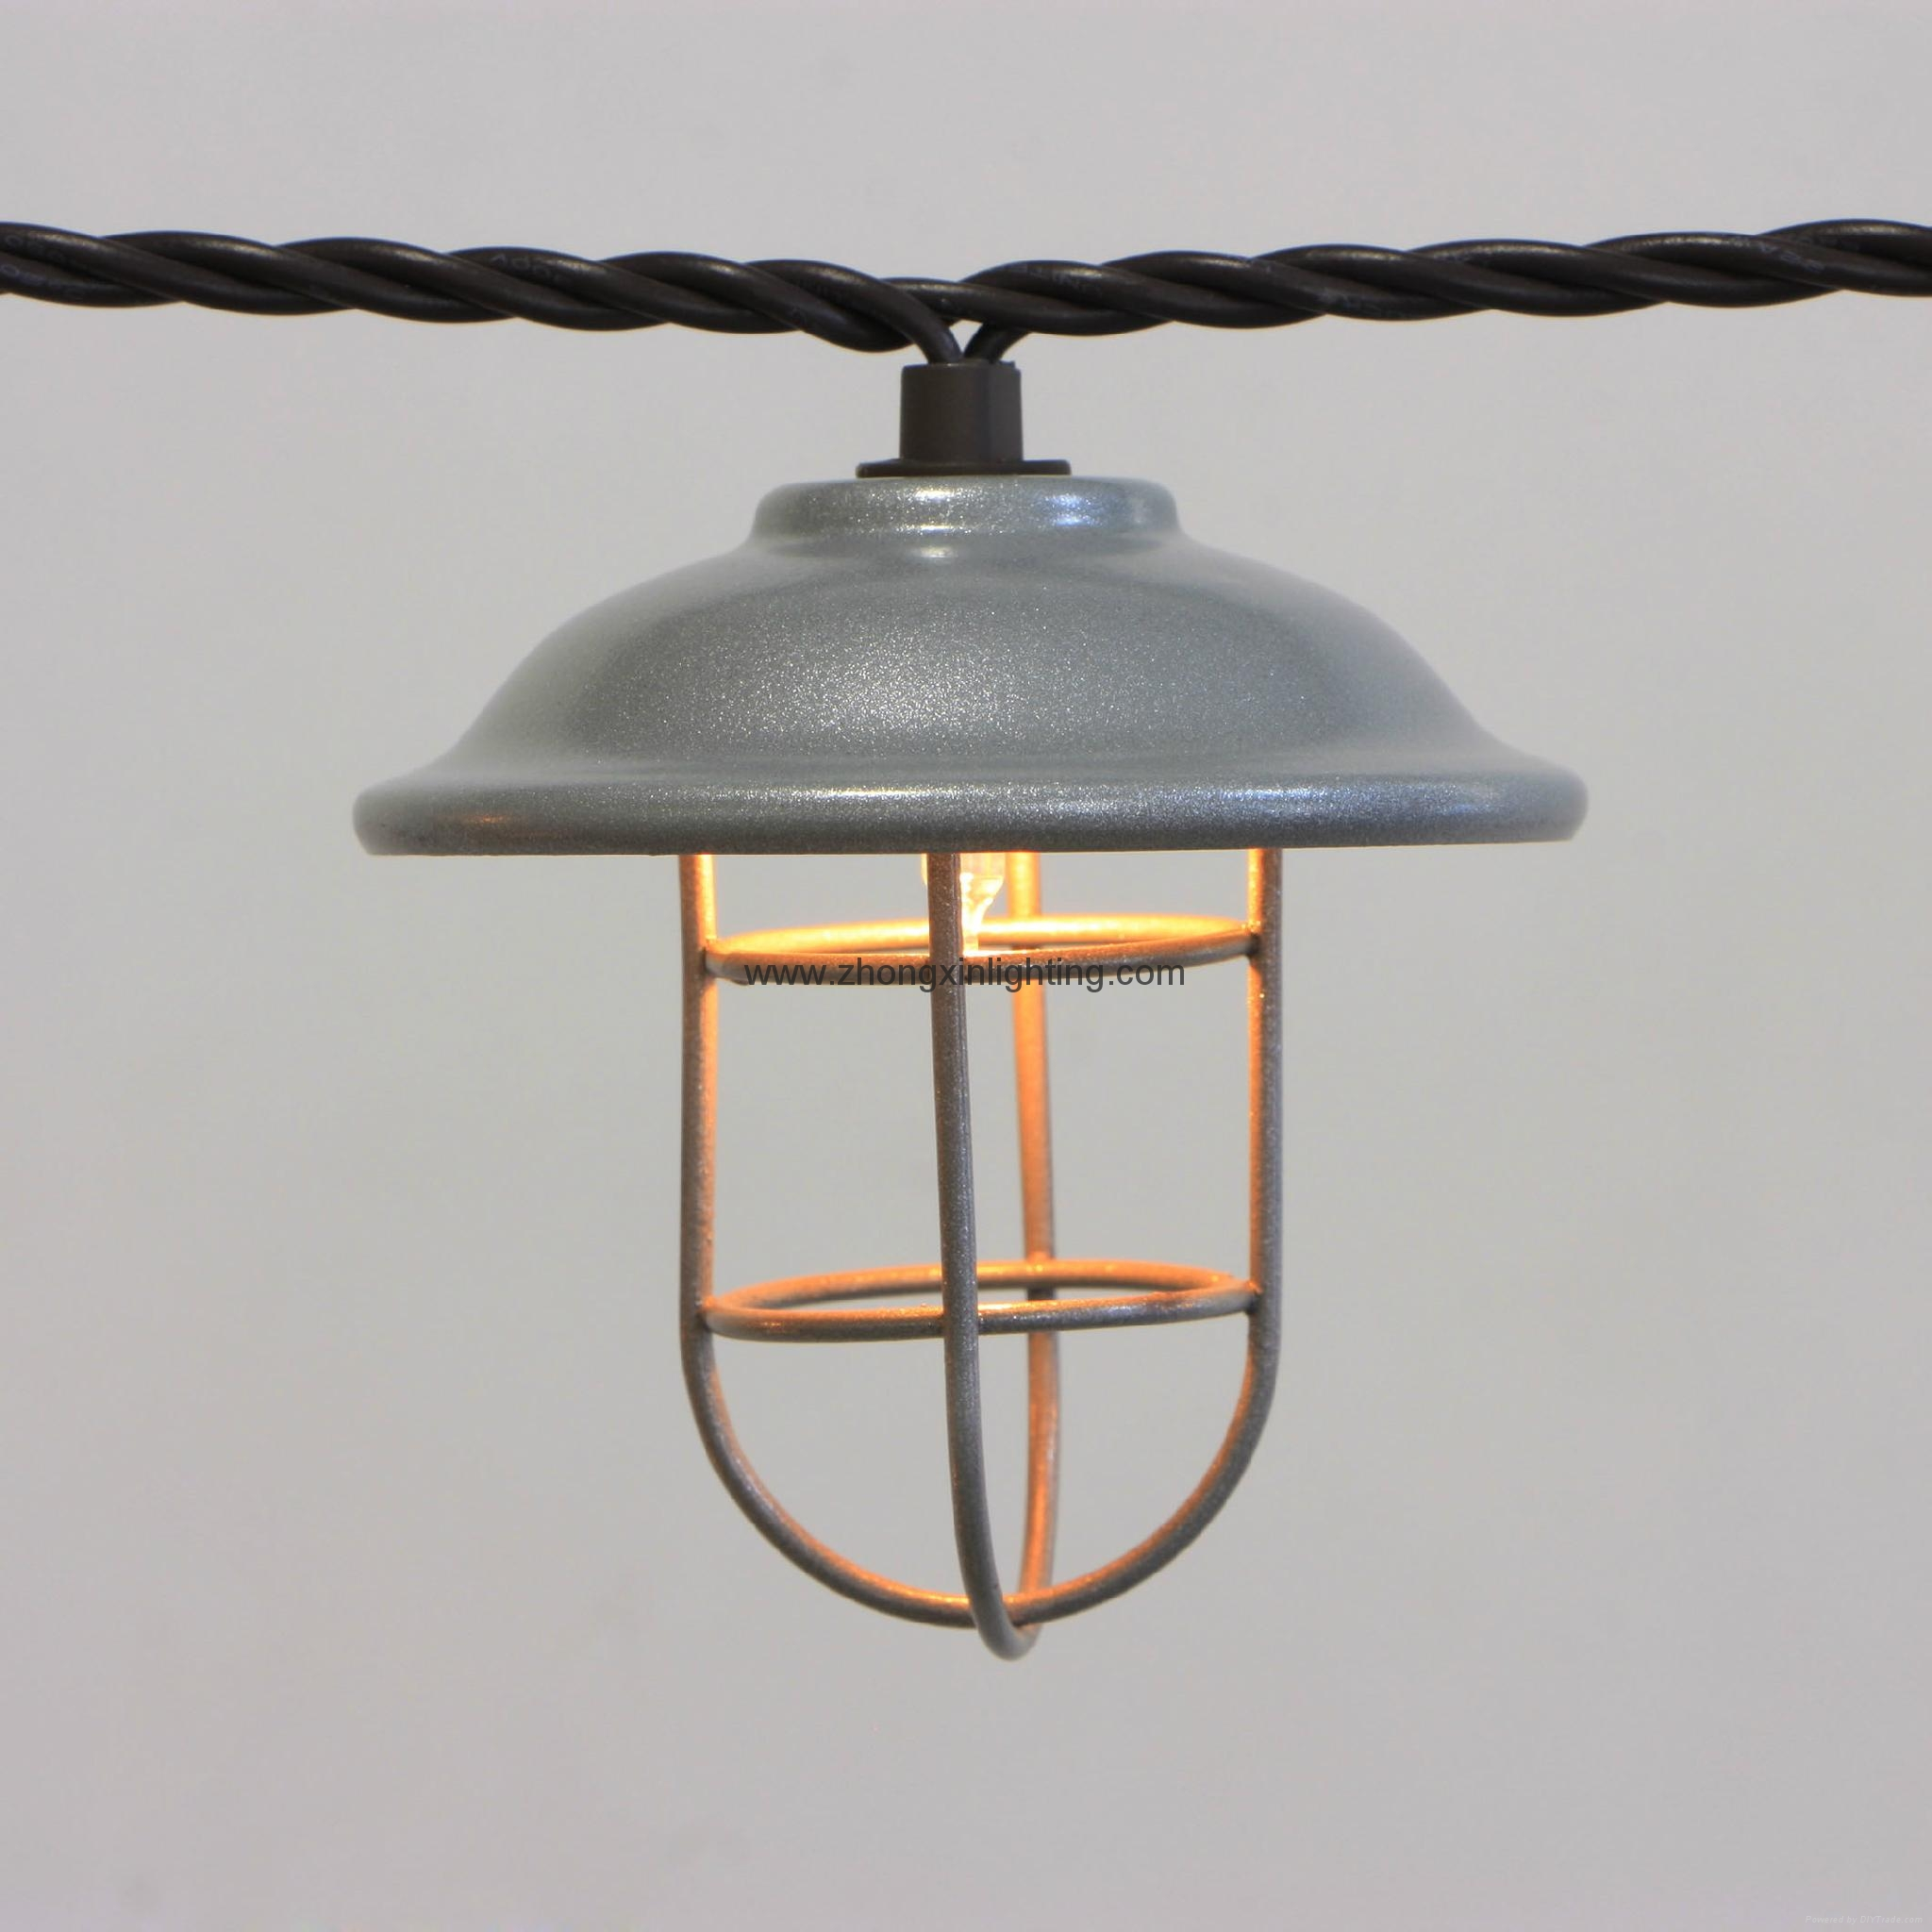 String Lights With Cage : Garden String Light-Decorative Galvanized hood & wire cage string light 10ct - KF01696 - Lawn ...